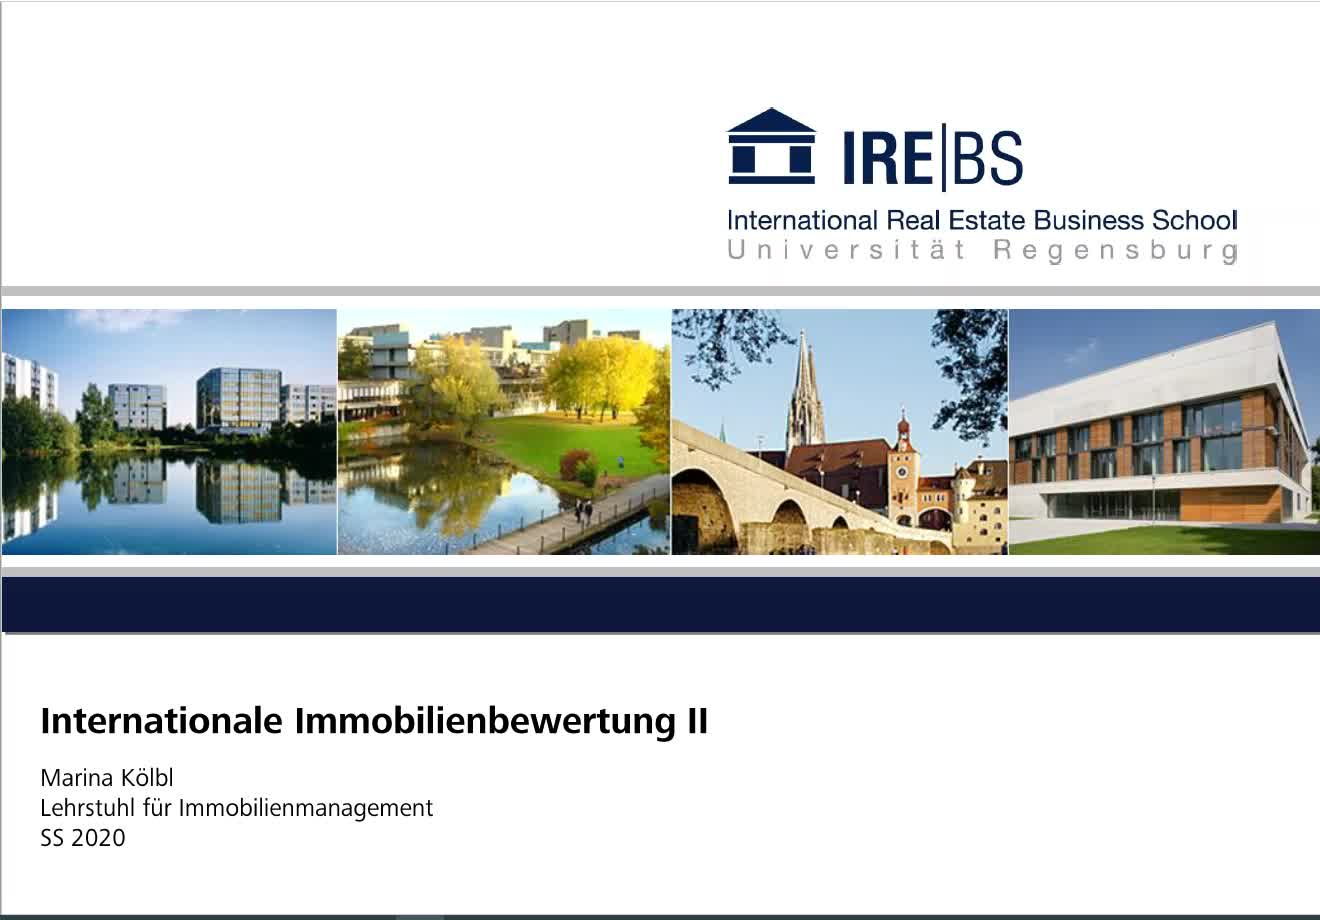 Immobilienmanagement II - Übung 2